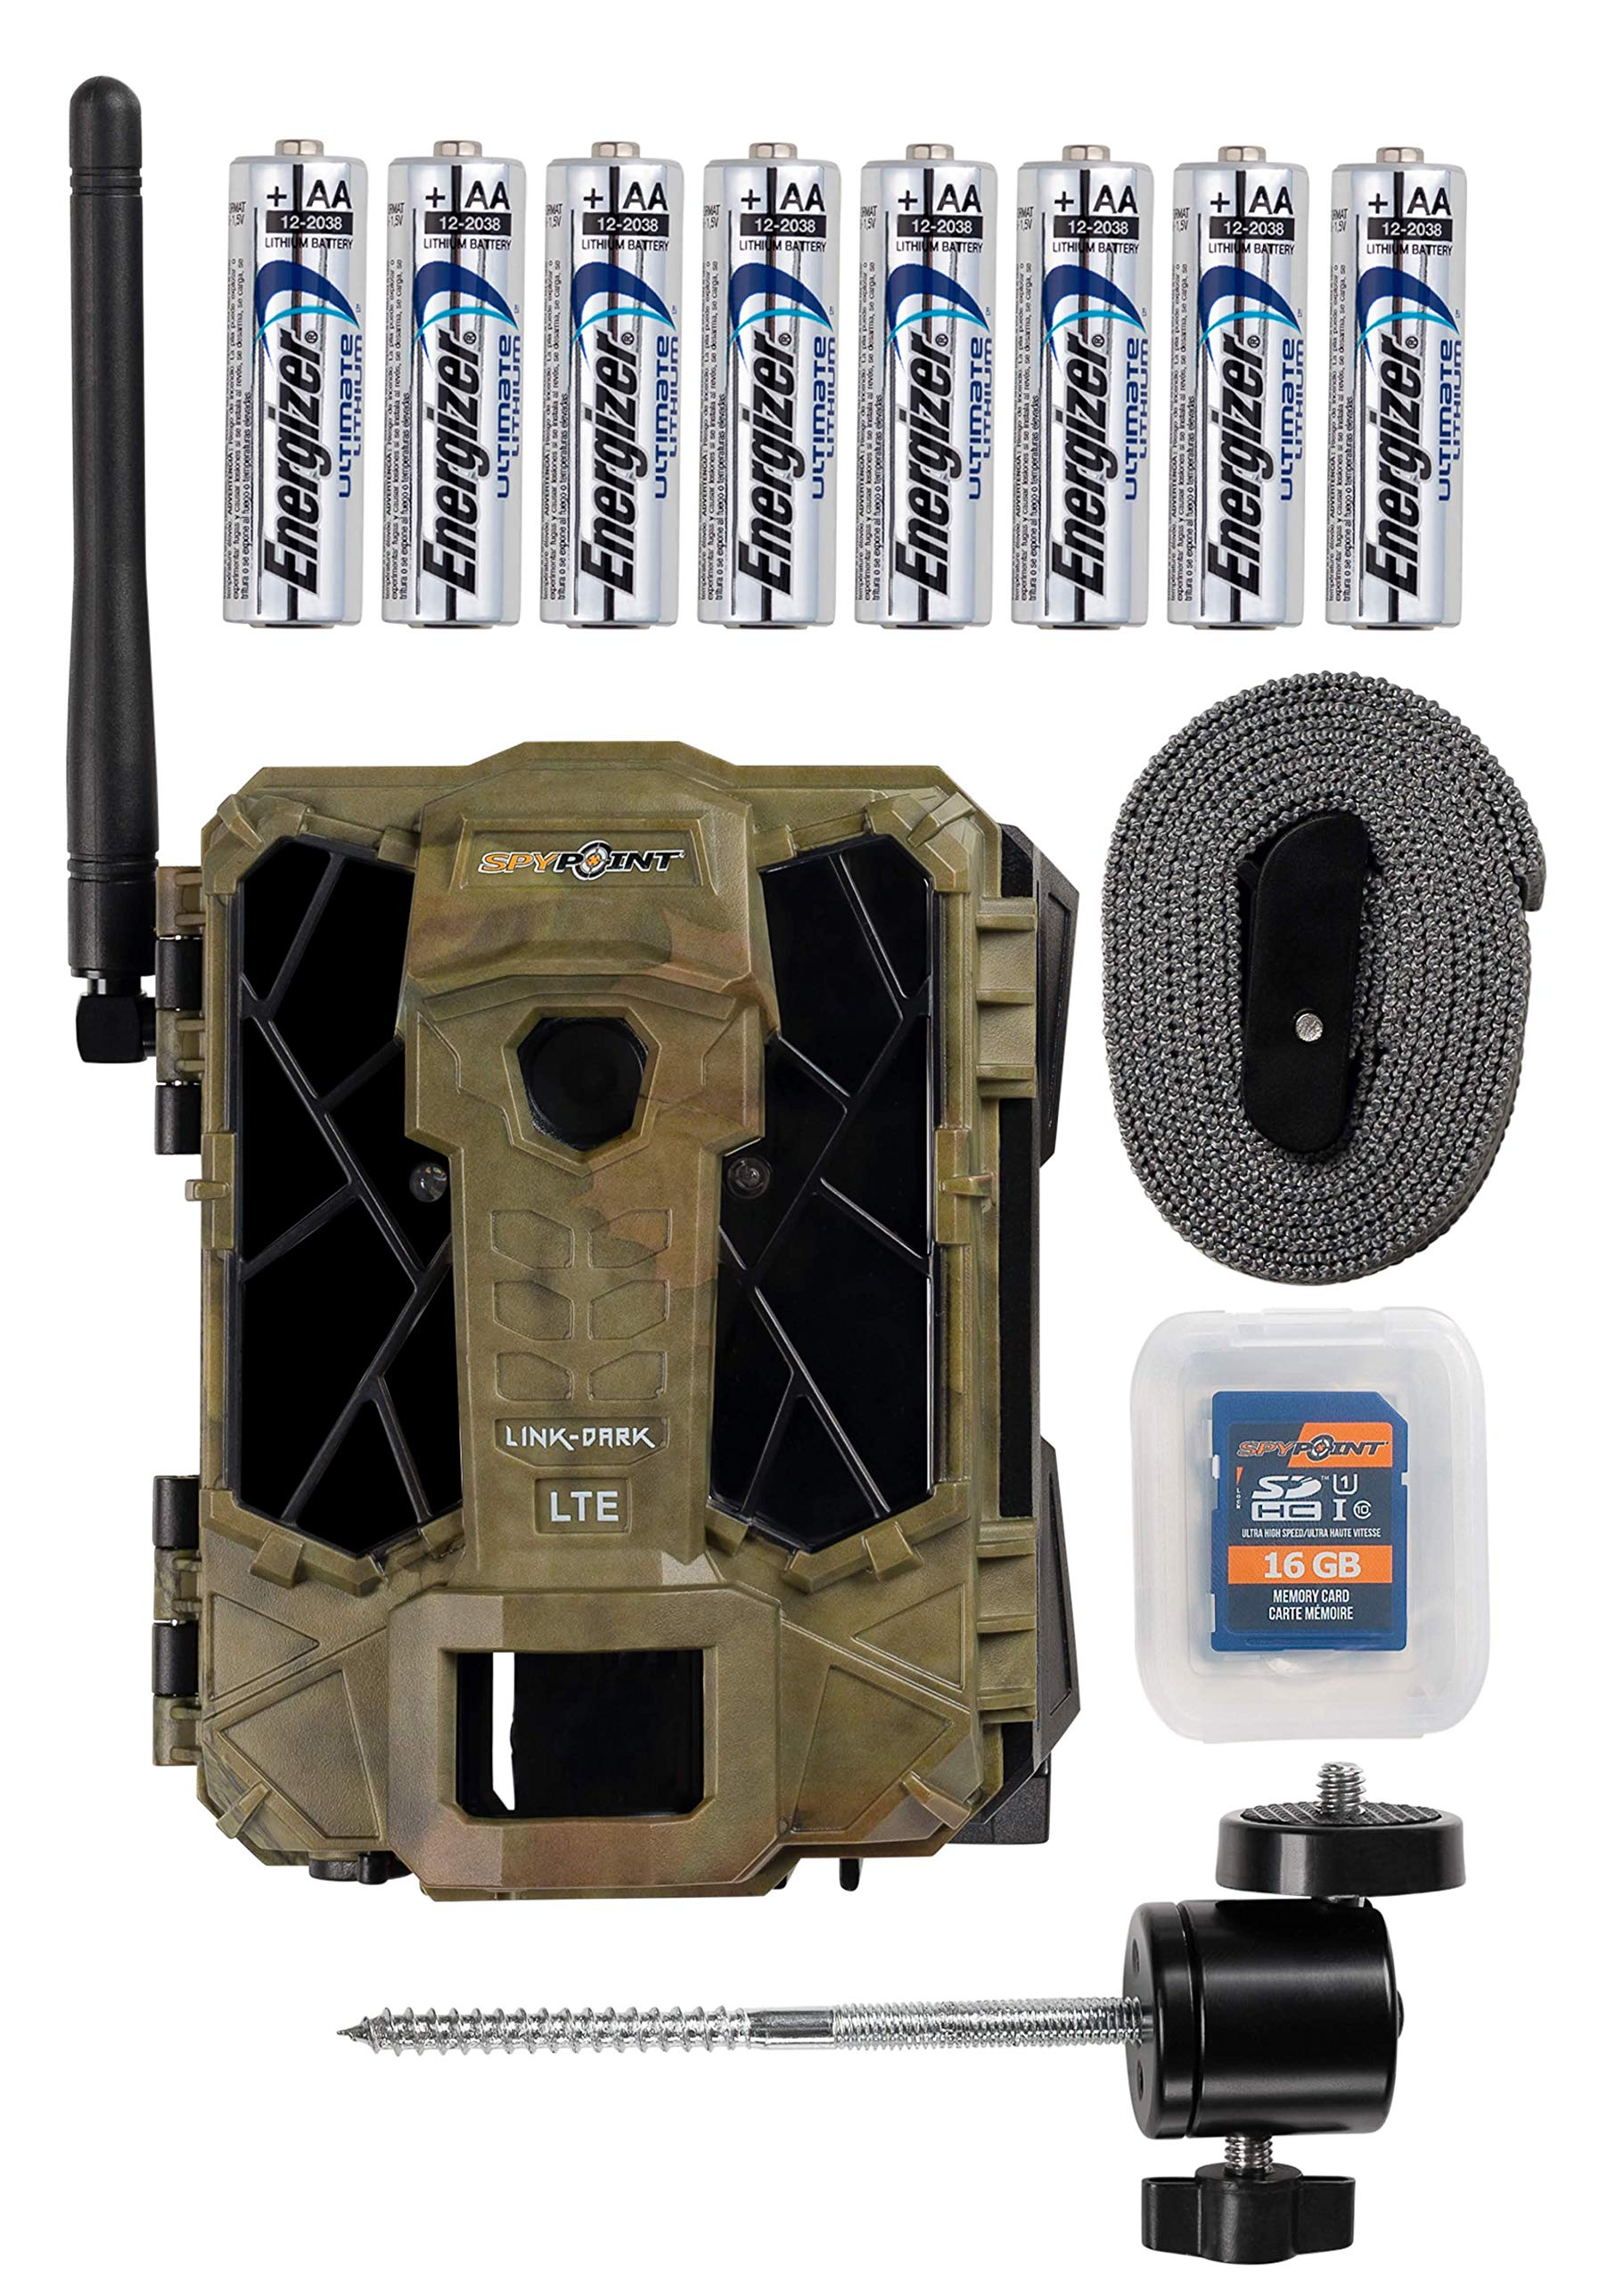 Spypoint Link Dark 4G LTE Cellular Trail Camera with Batteries, SD Card and Mount (Verizon LTE)